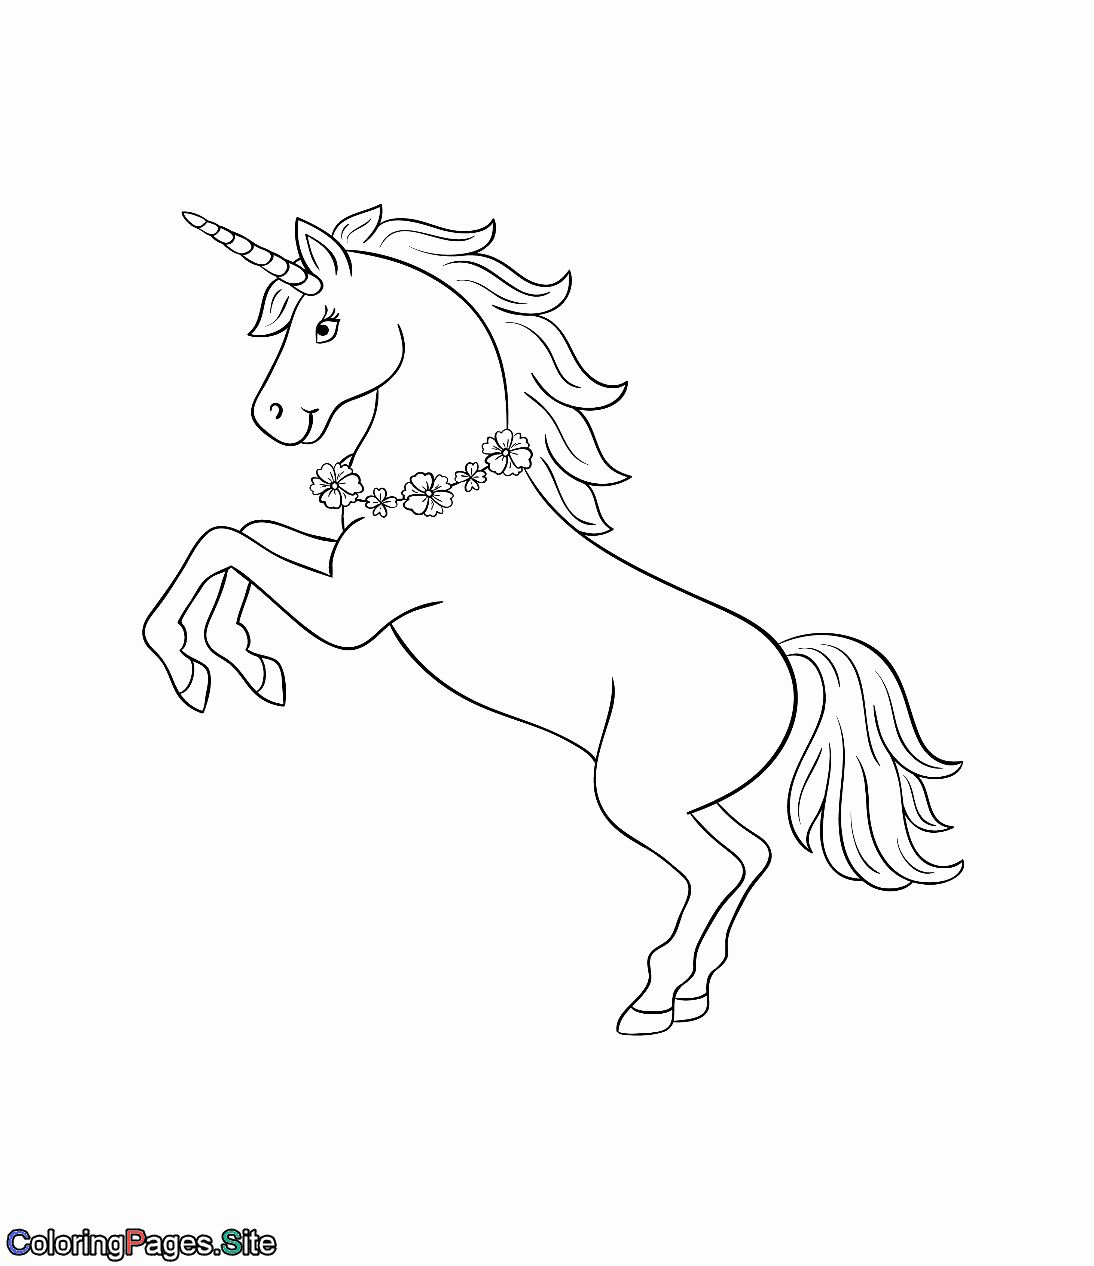 Coloring Pages Animals And Flowers New Unicorn With A Necklace Of Flowers Unicorn Coloring Pages Princess Coloring Pages Horse Coloring Pages